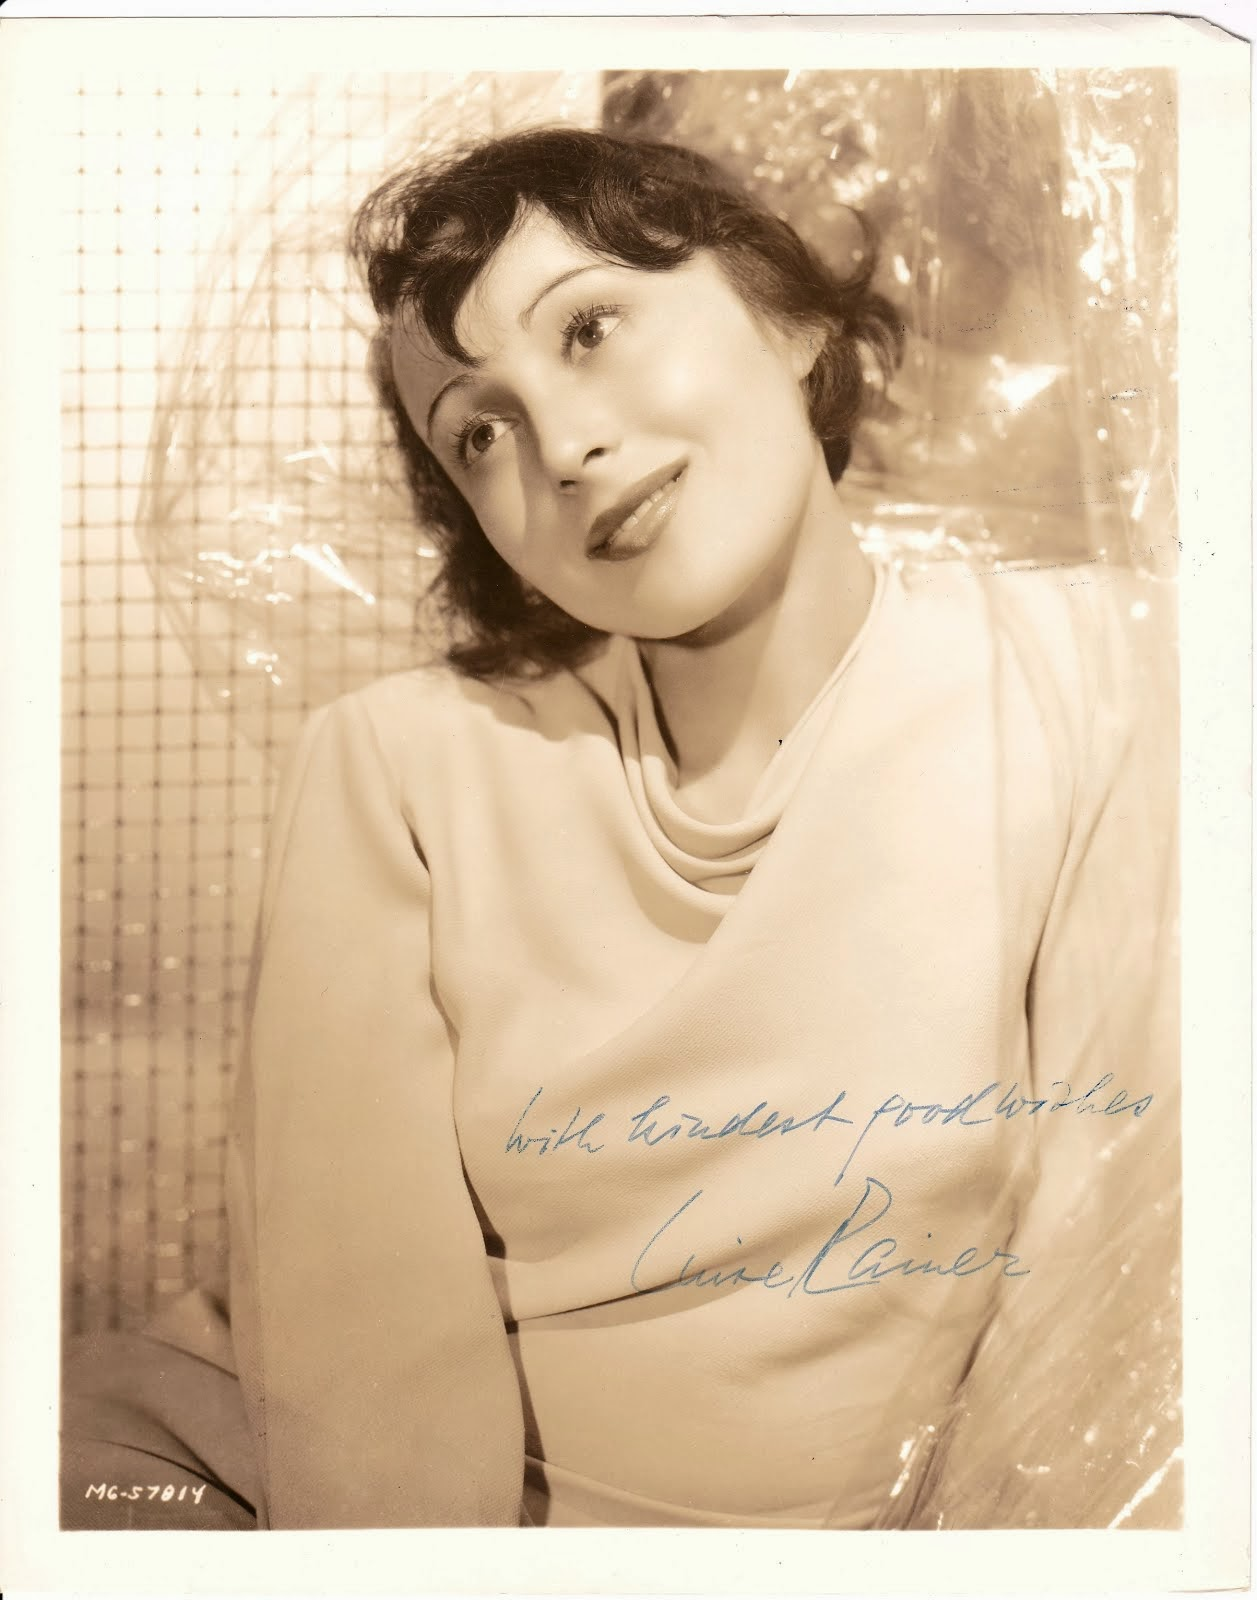 Academy Award Winner Luise Ranier VINTAGE 8x10 auto. photo